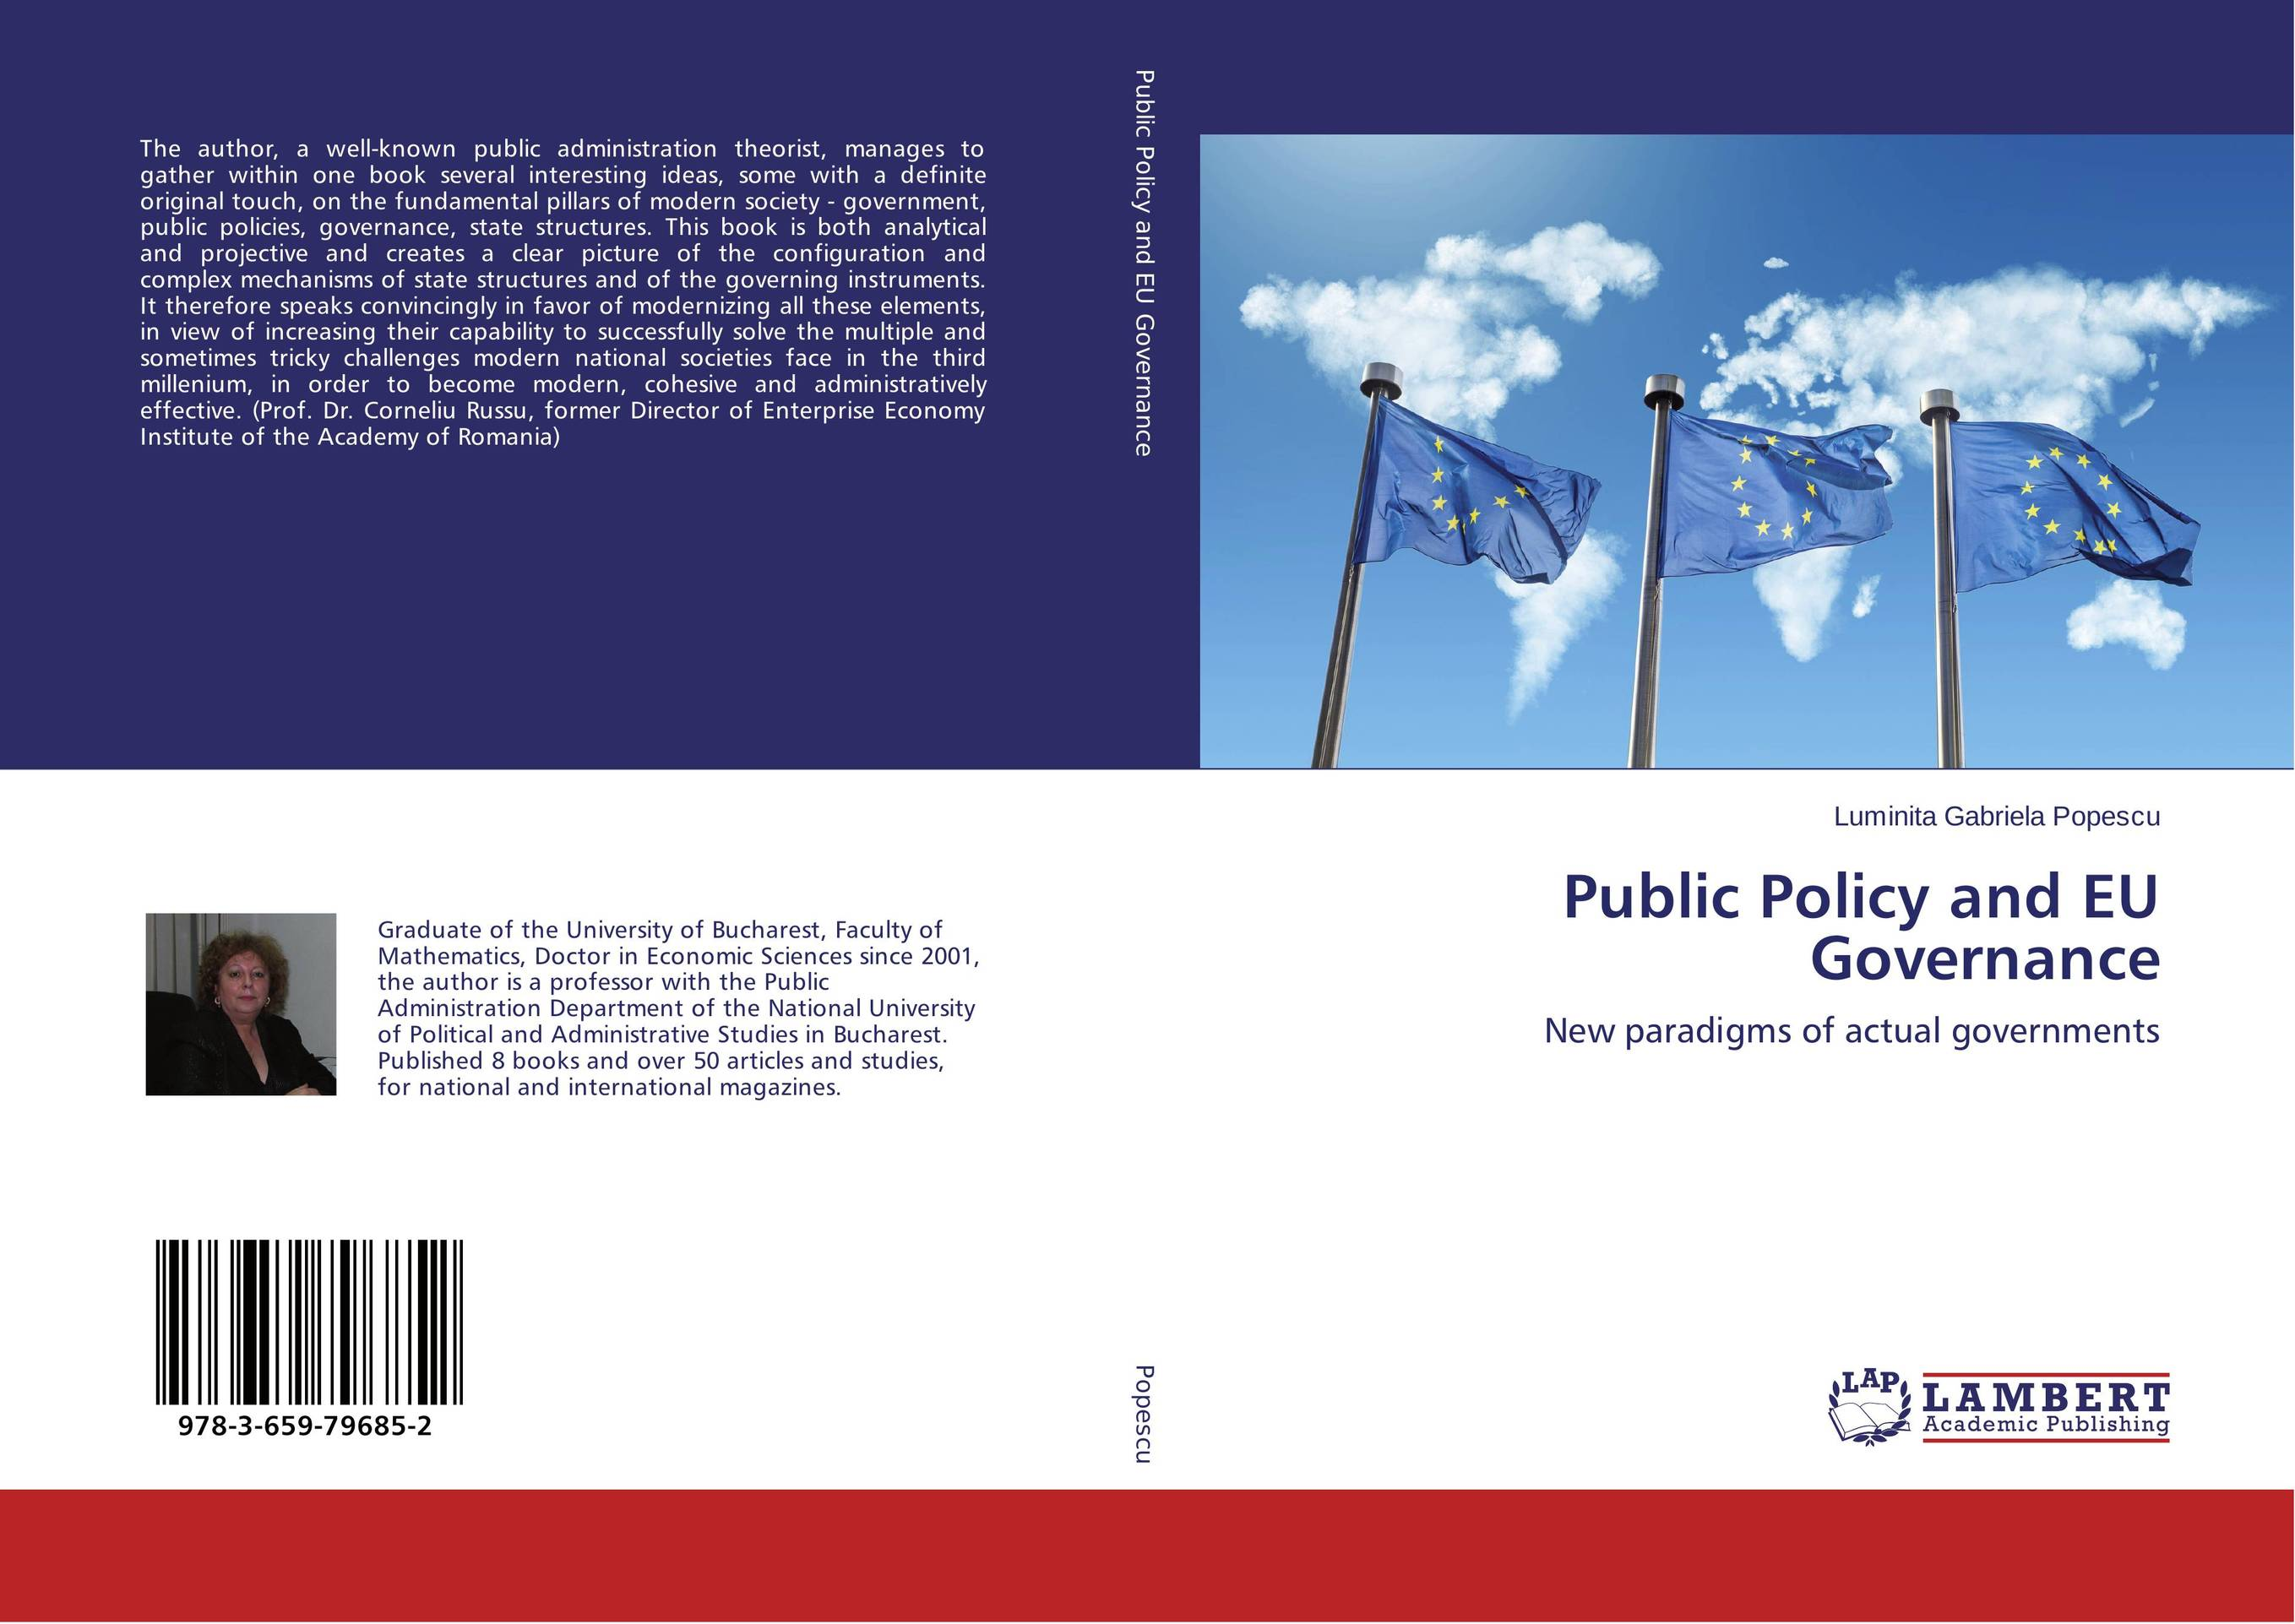 Public Policy and EU Governance dr david m mburu prof mary w ndungu and prof ahmed hassanali virulence and repellency of fungi on macrotermes and mediating signals